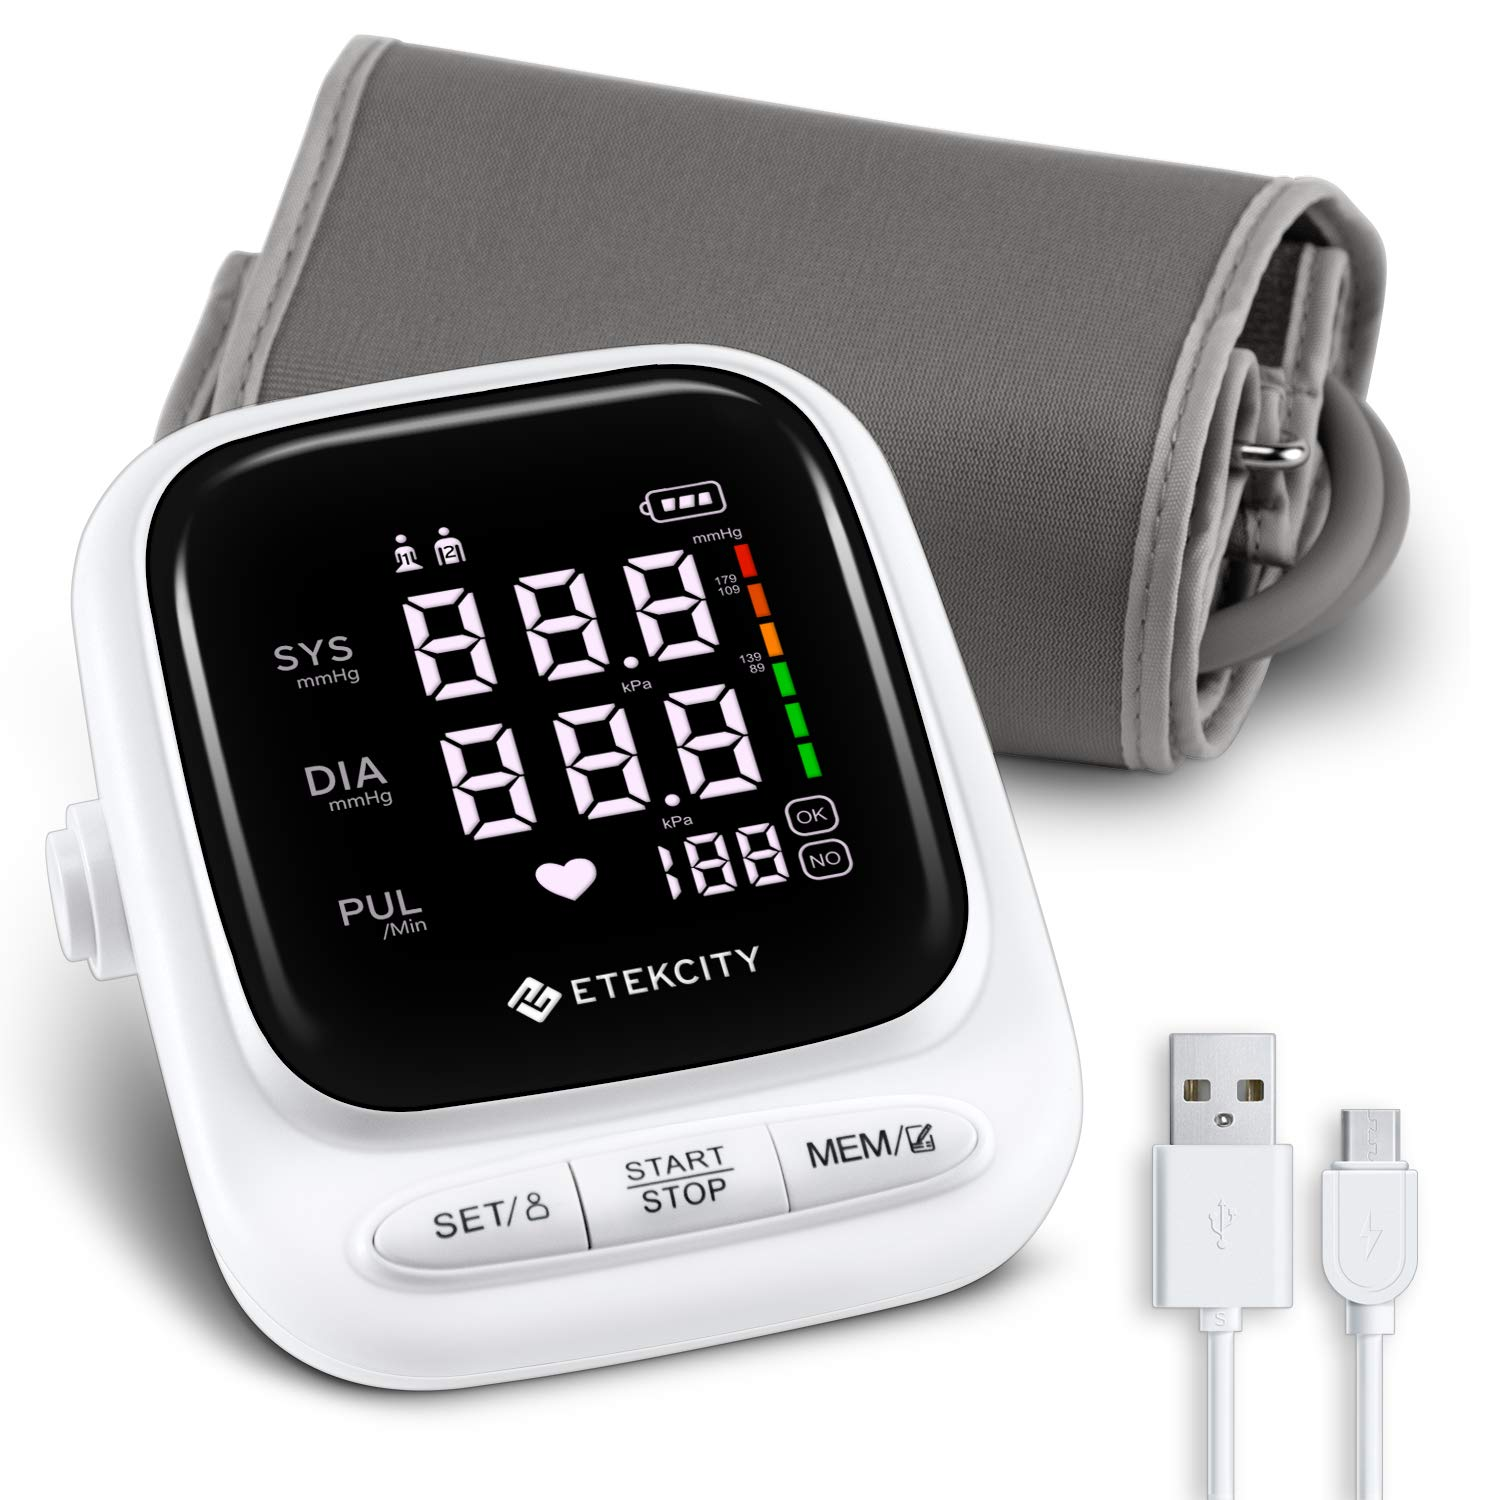 Etekcity Blood Pressure Monitor, Upper Arm Rechargeable BP Monitor Machine with LED Display and Speaker, 2-User with 90 Memory Each, Soft Wide-Range Cuff, FDA Compliant